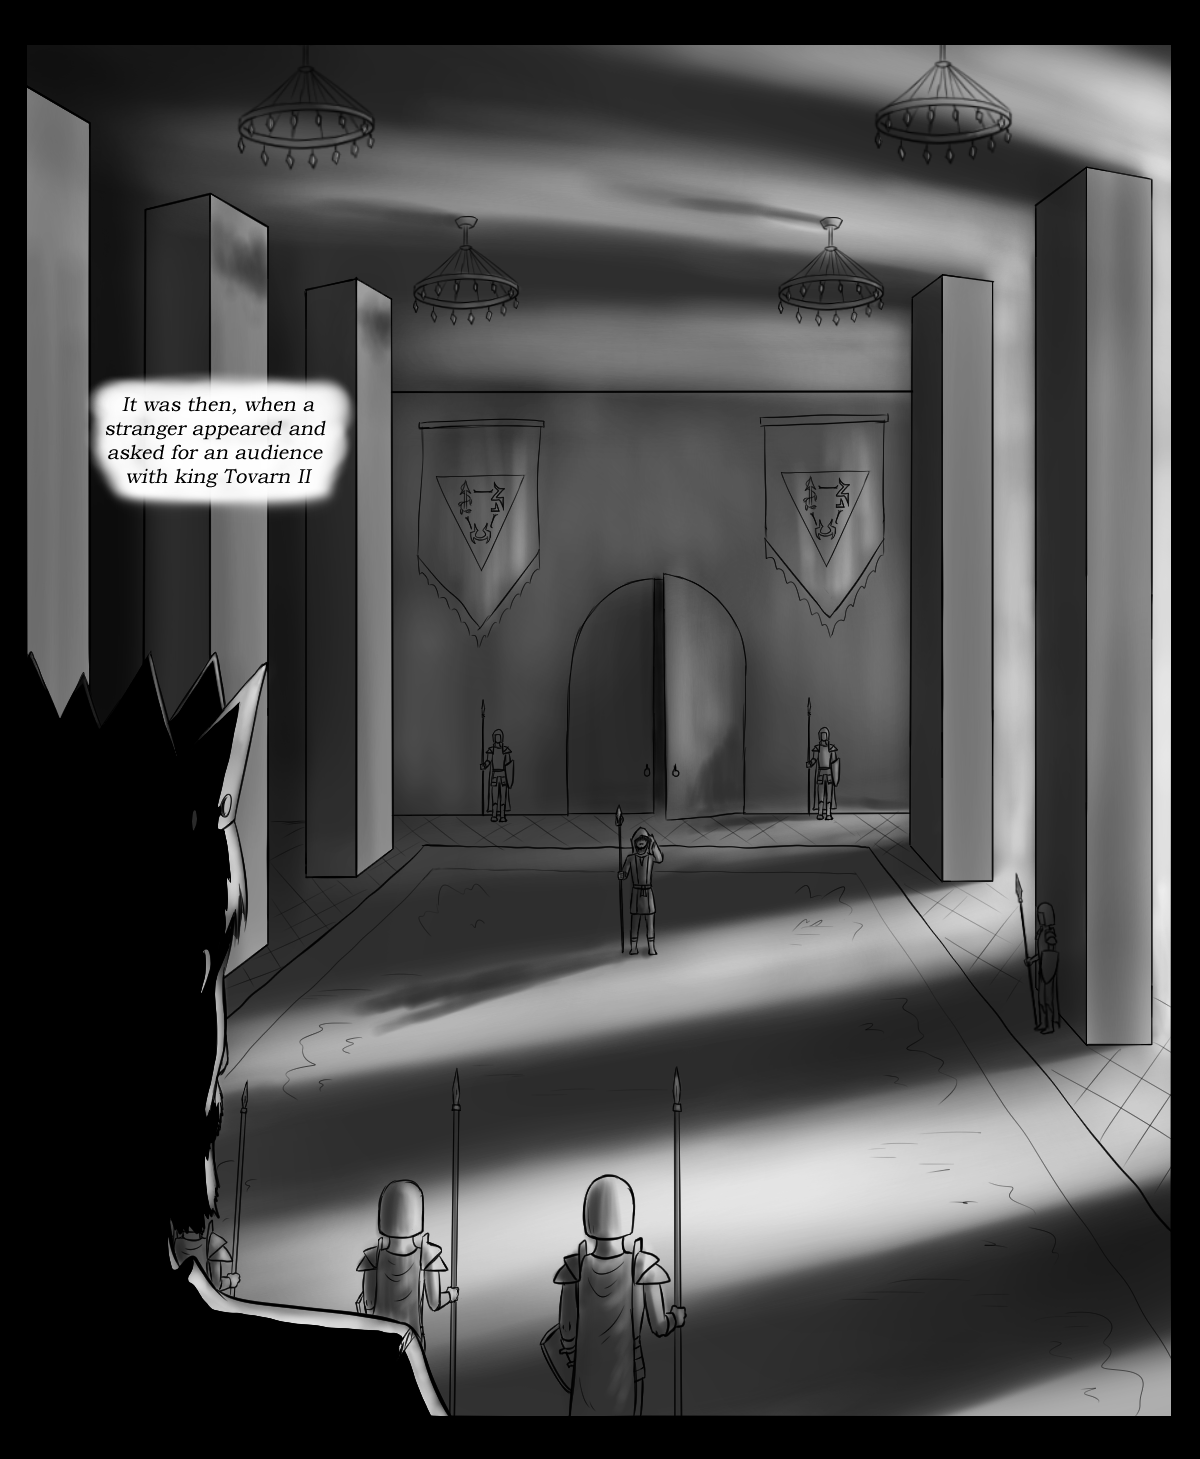 Page 25 - The legend of Kern (Part 4)